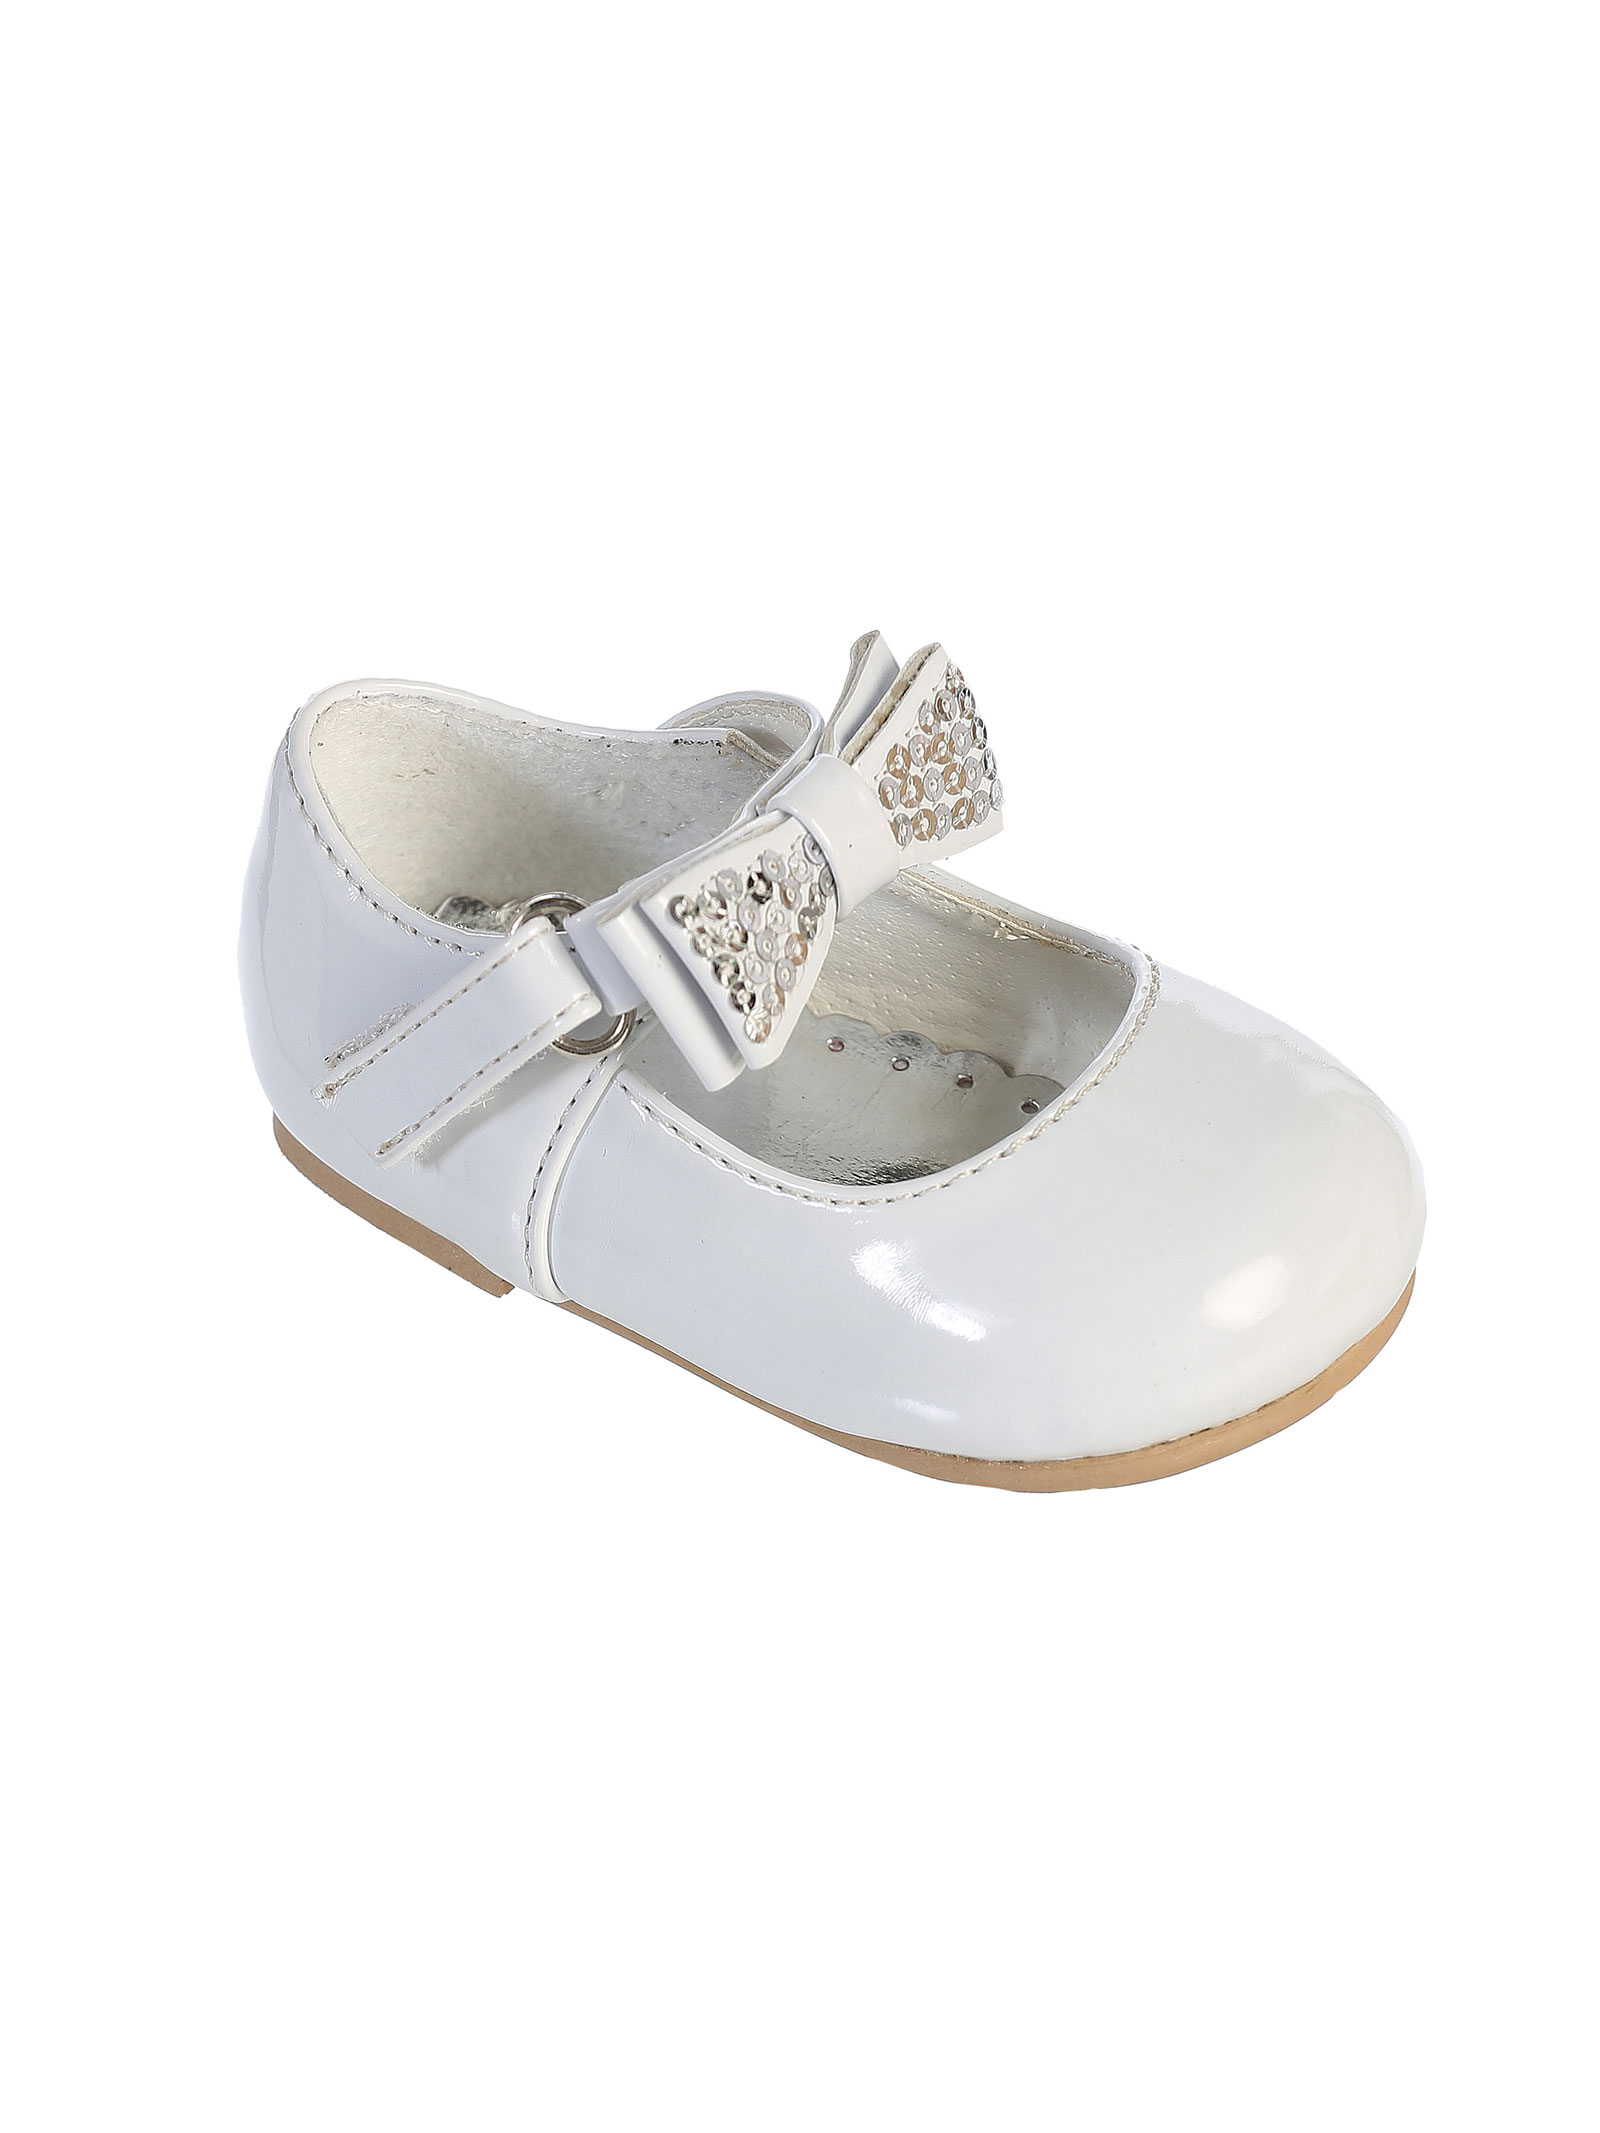 tt s100 infant and toddler shoes style s100 white